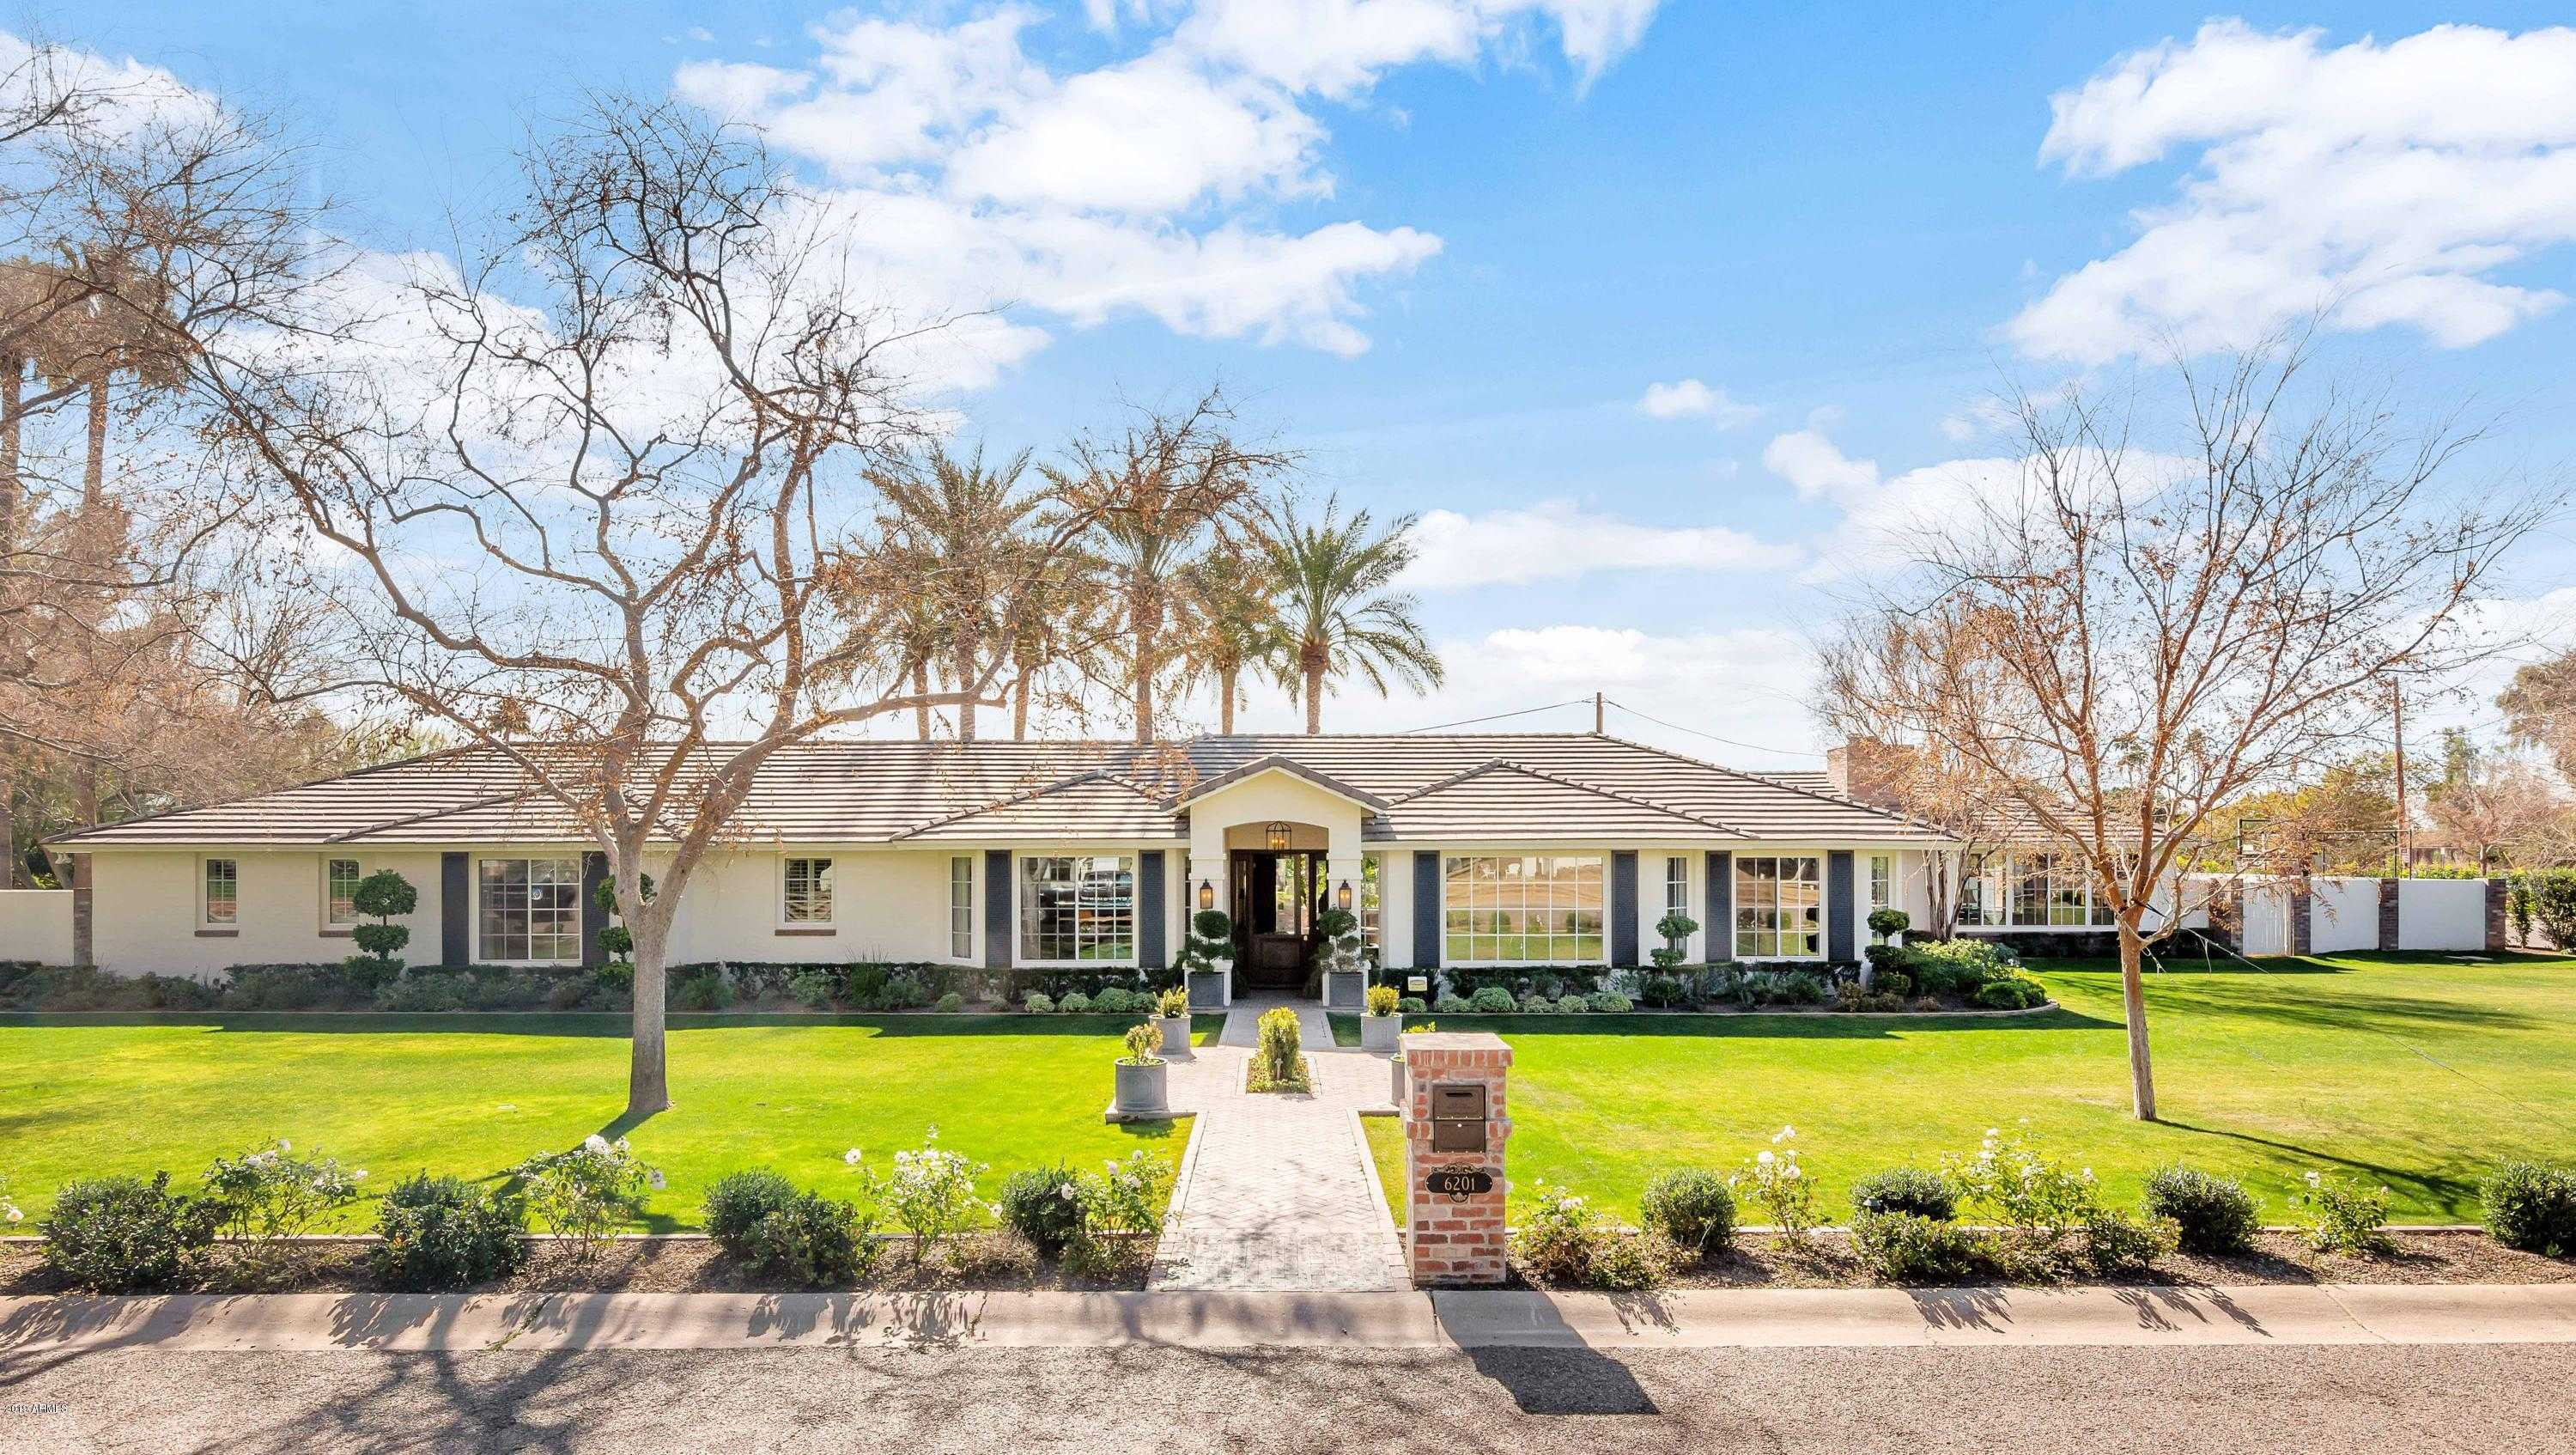 $2,695,000 - 6Br/7Ba - Home for Sale in Dana Est., Scottsdale